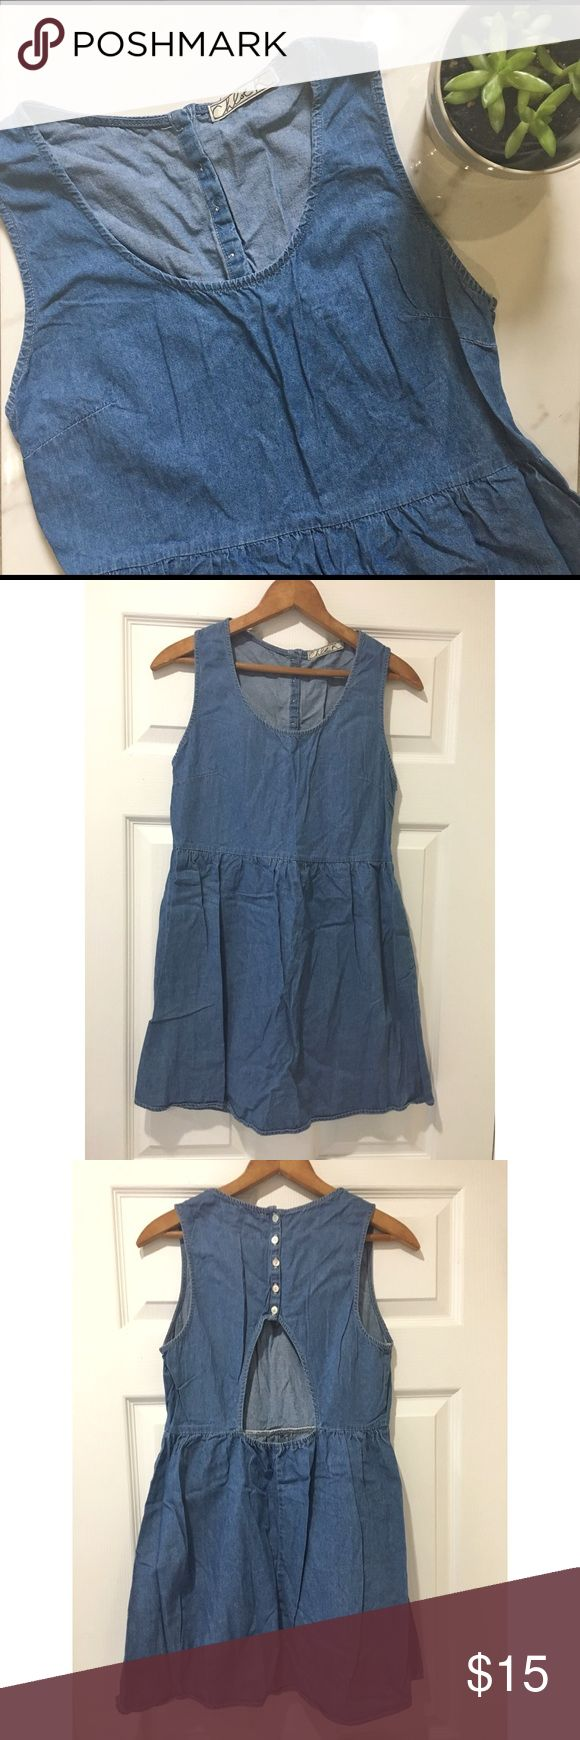 """CHLOE K Denim Skater Dress There is no tag that shows what size it is. Measurements down below. This cute, denim skater dress makes the summer season feel it could last just a little longer if we only hope it does. 